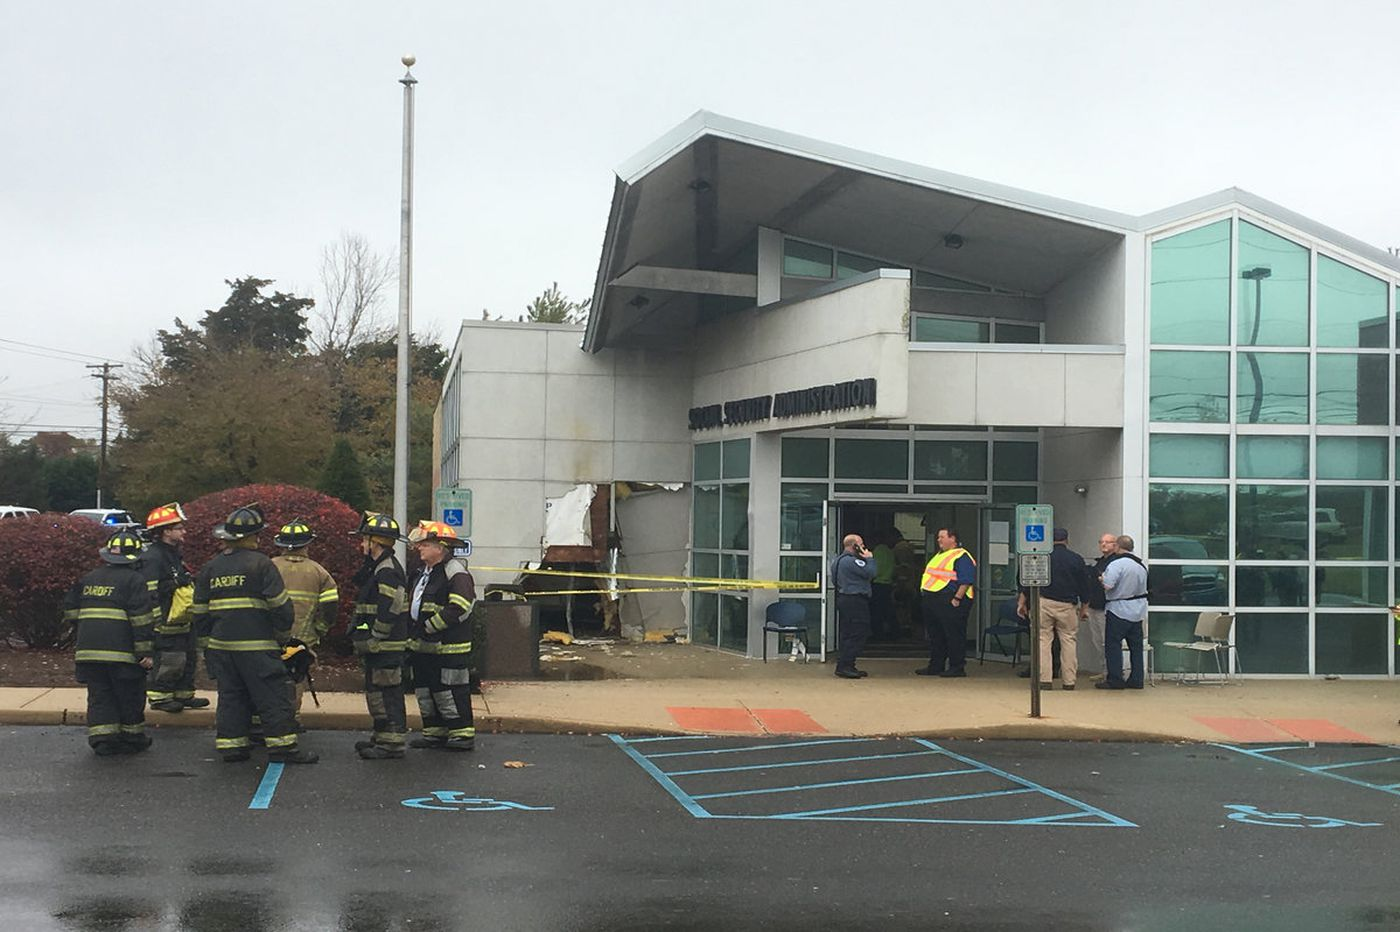 20 hurt after car drives into South Jersey Social Security building